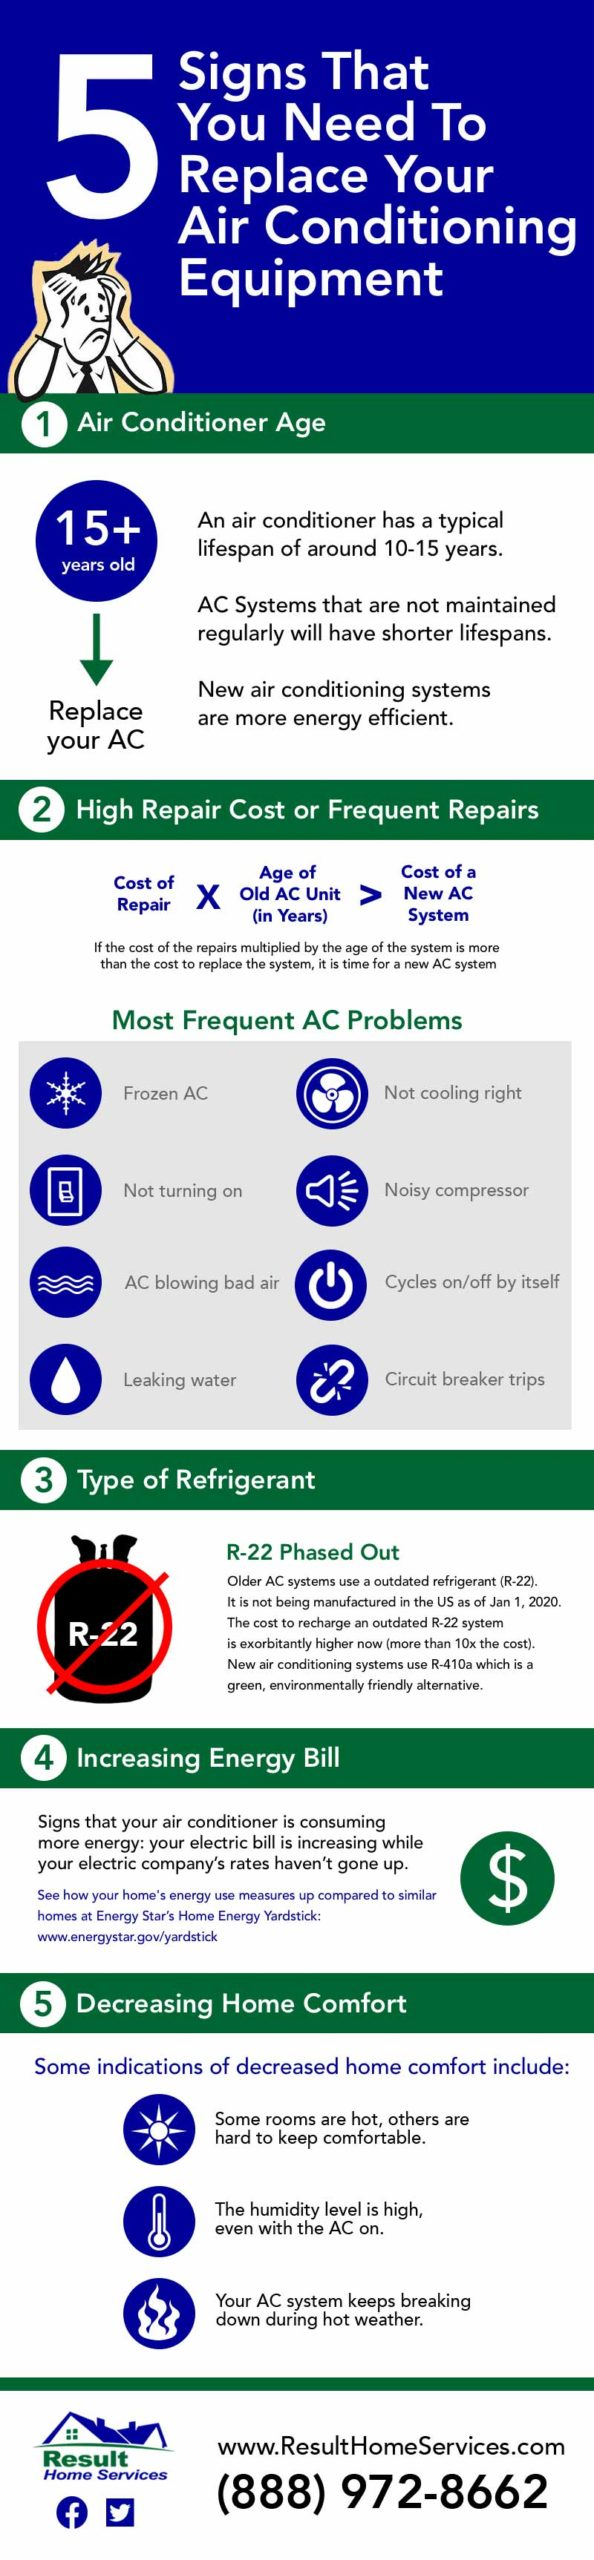 5 Signs You Need A New AC System